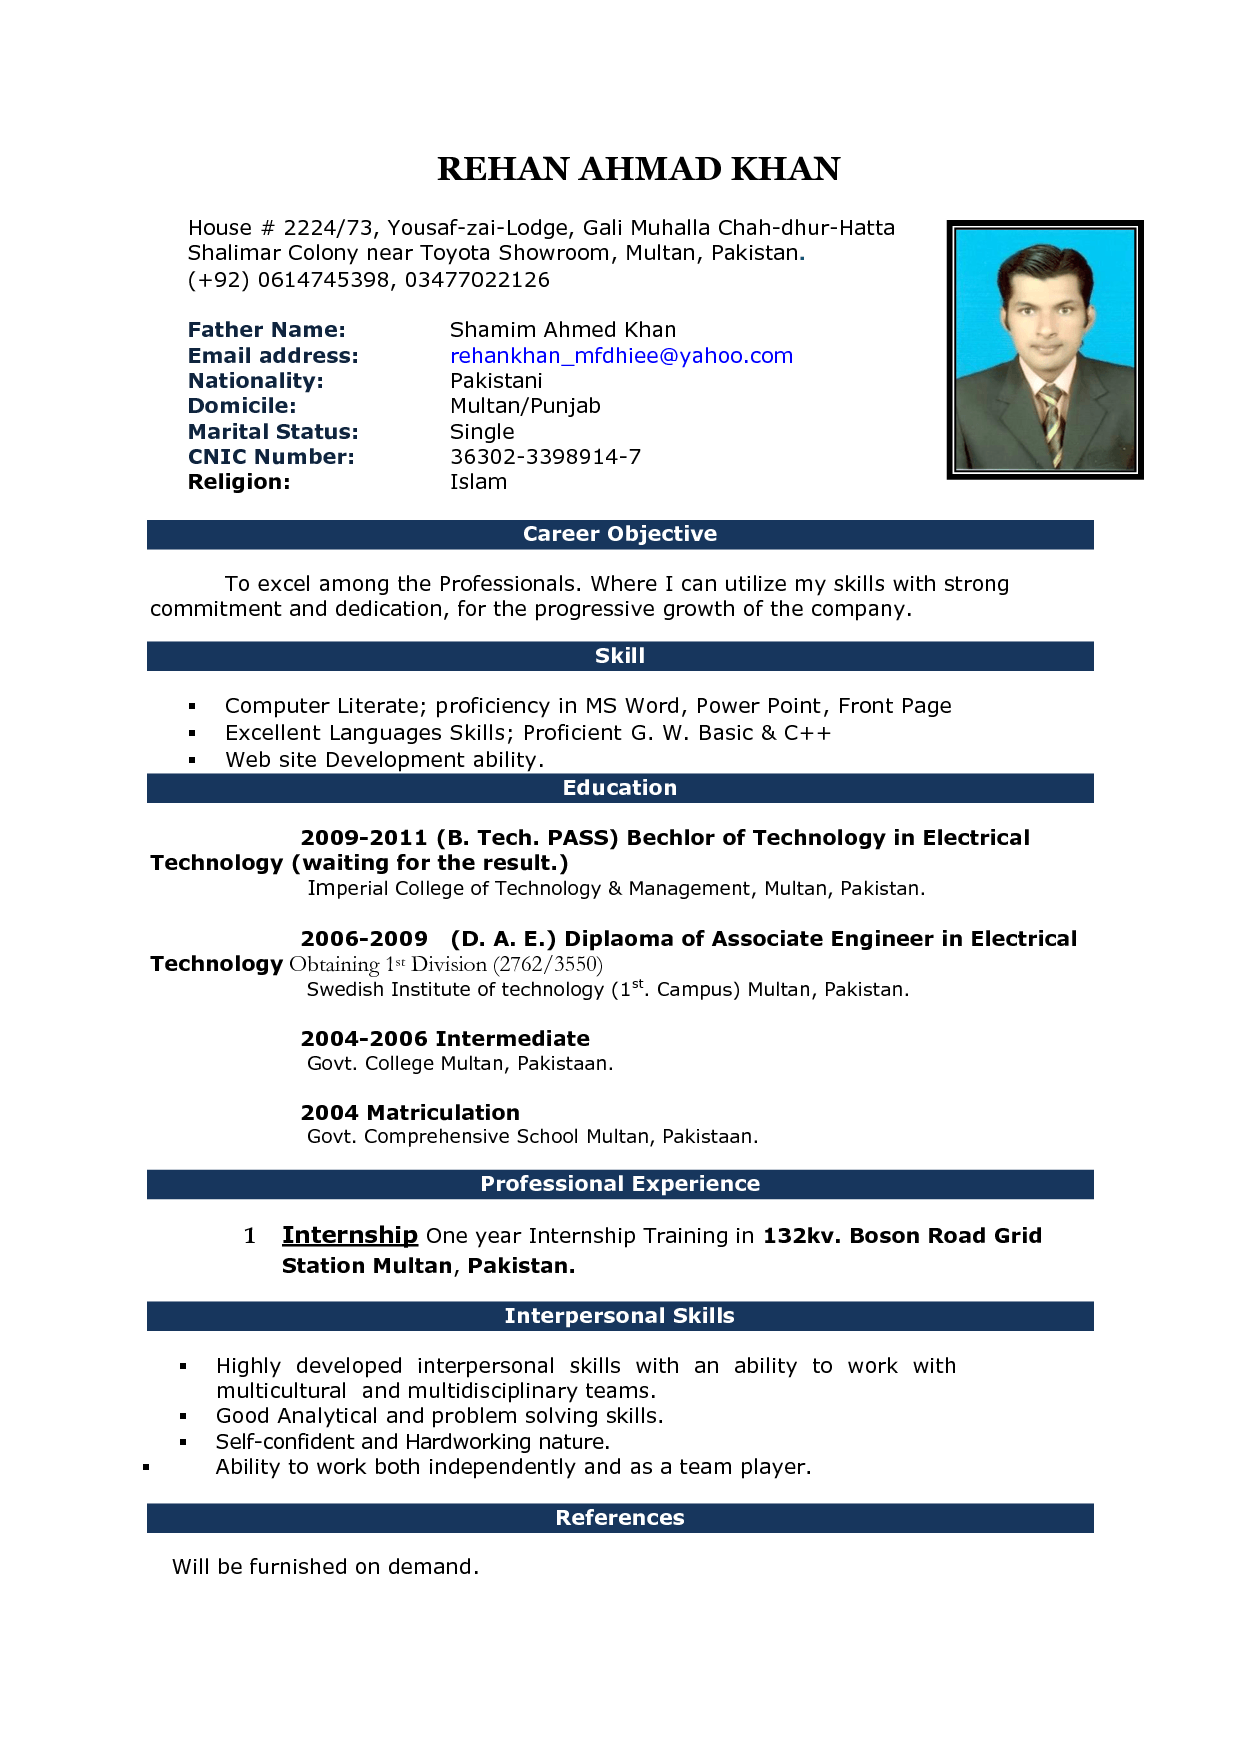 Cv Sample Format In Ms Word Resume Formatting In Word Resume Sample